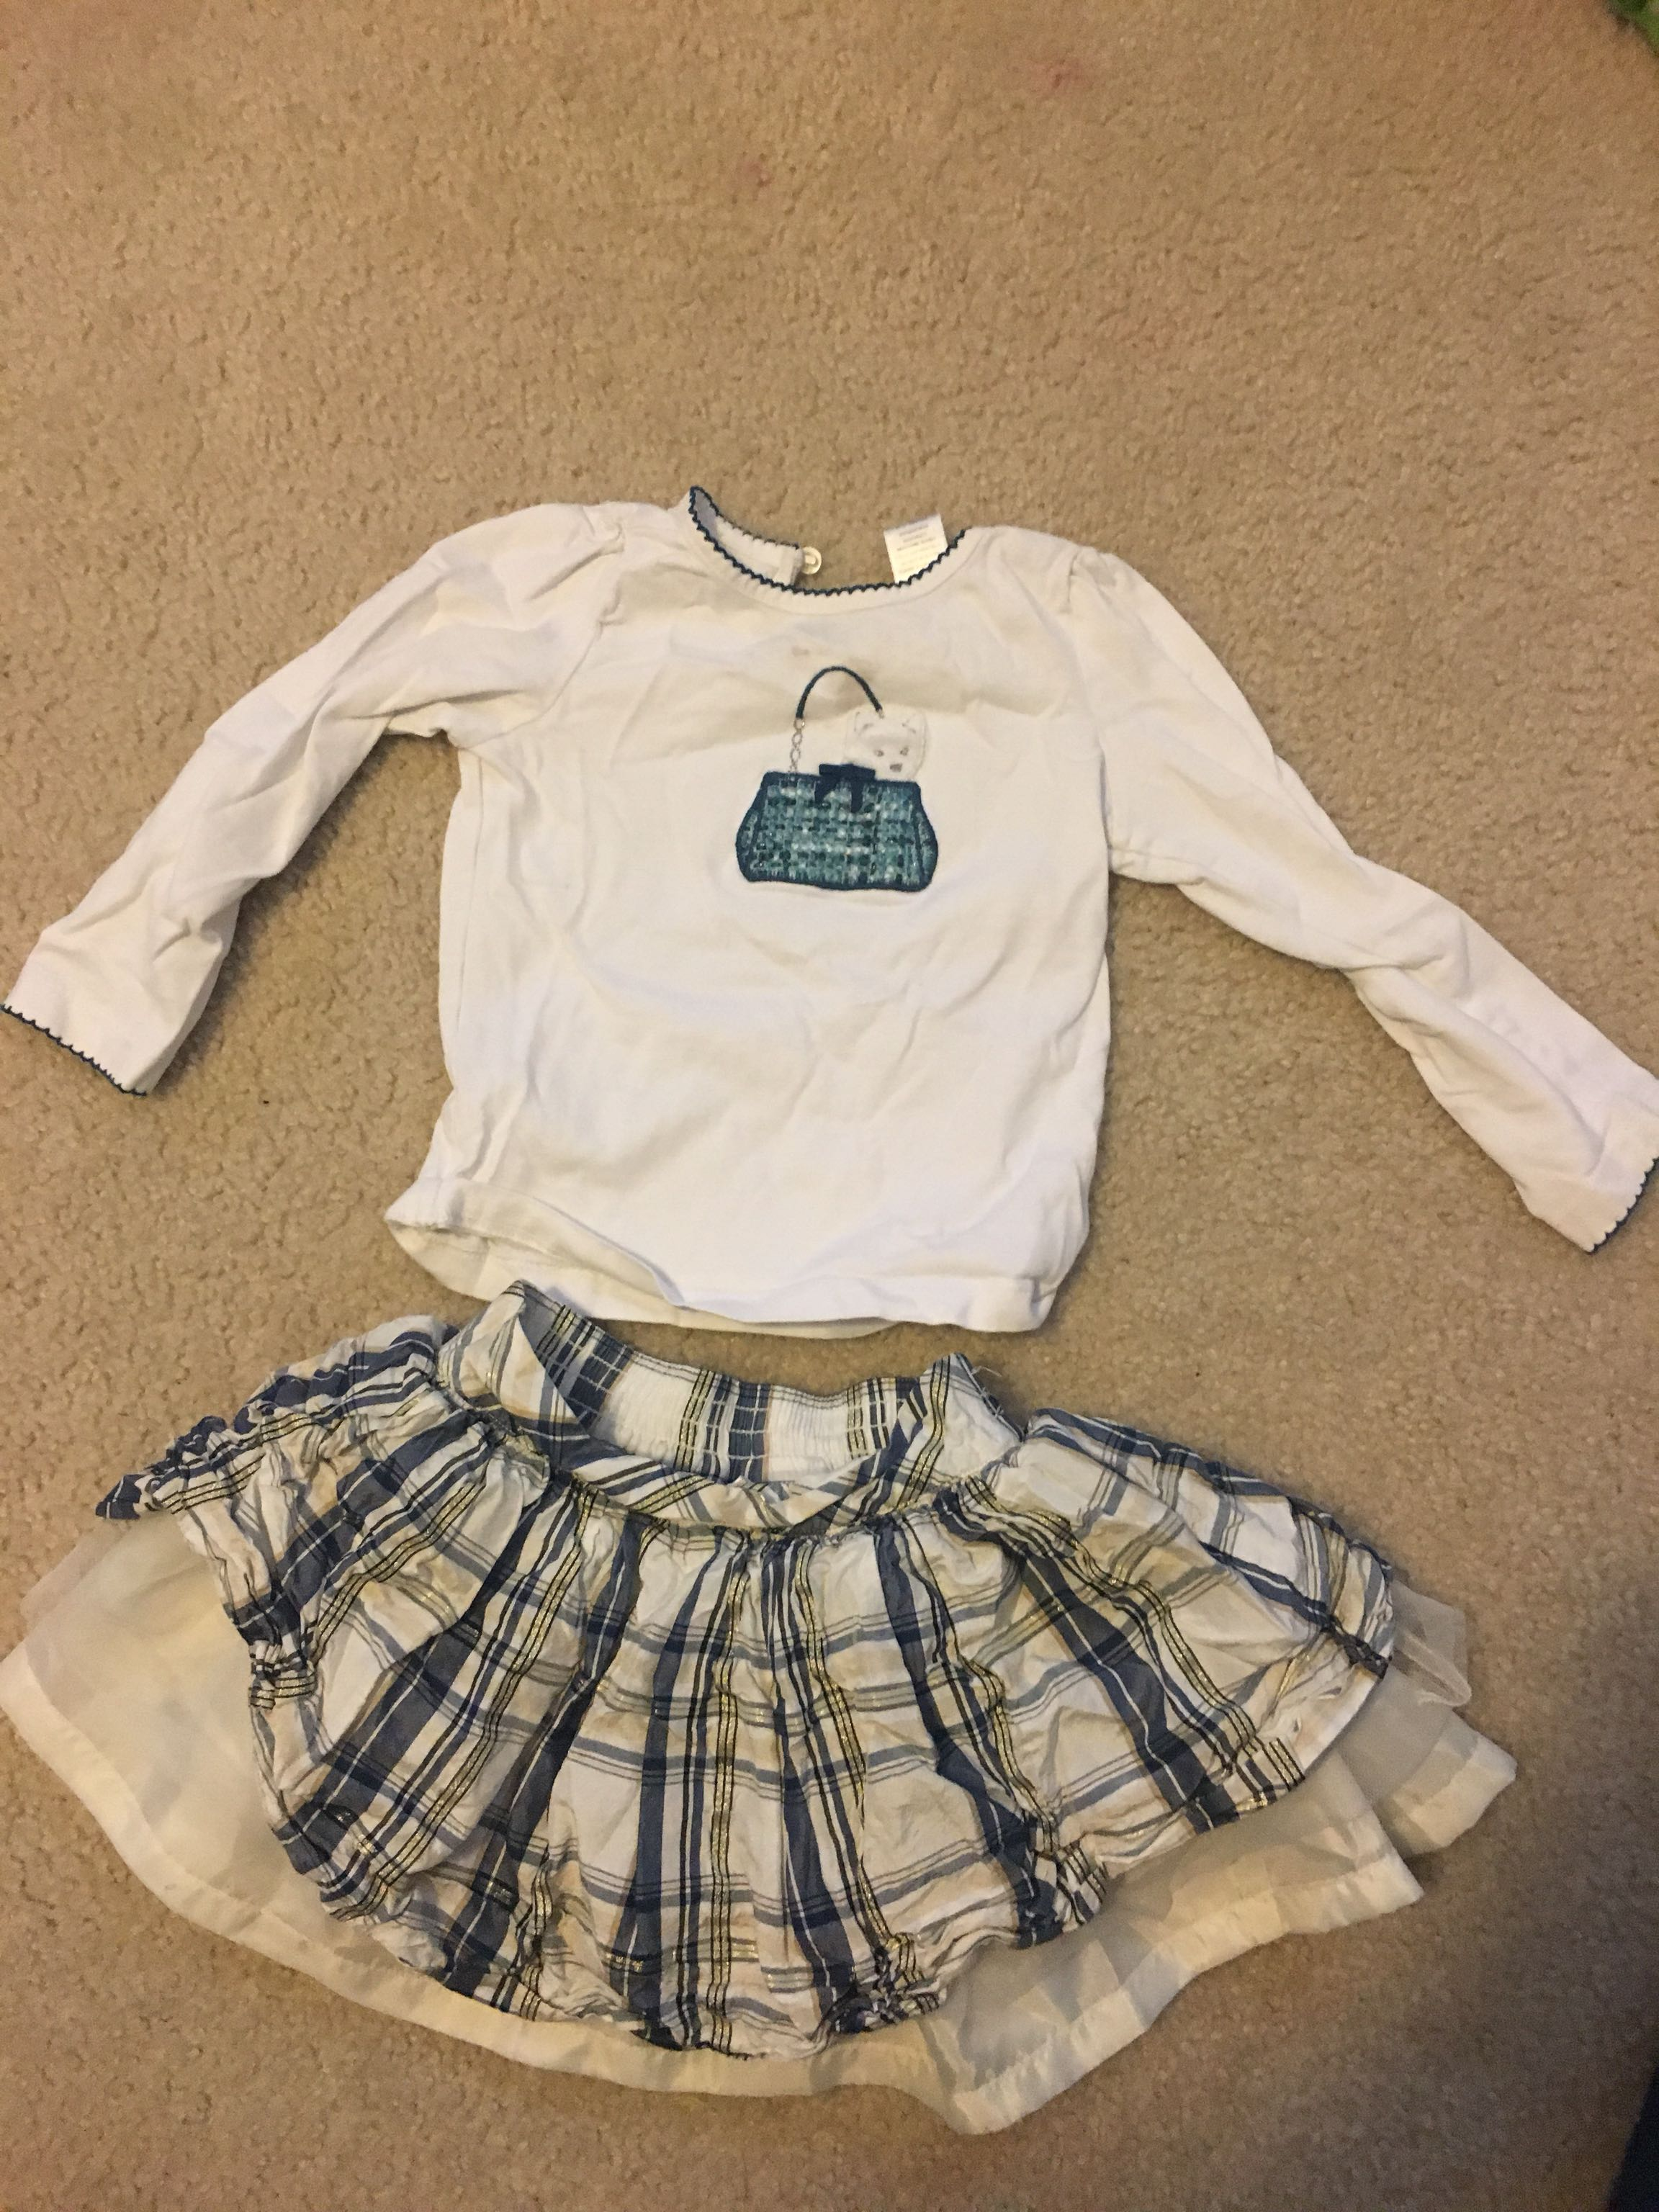 12-18 mo outfit